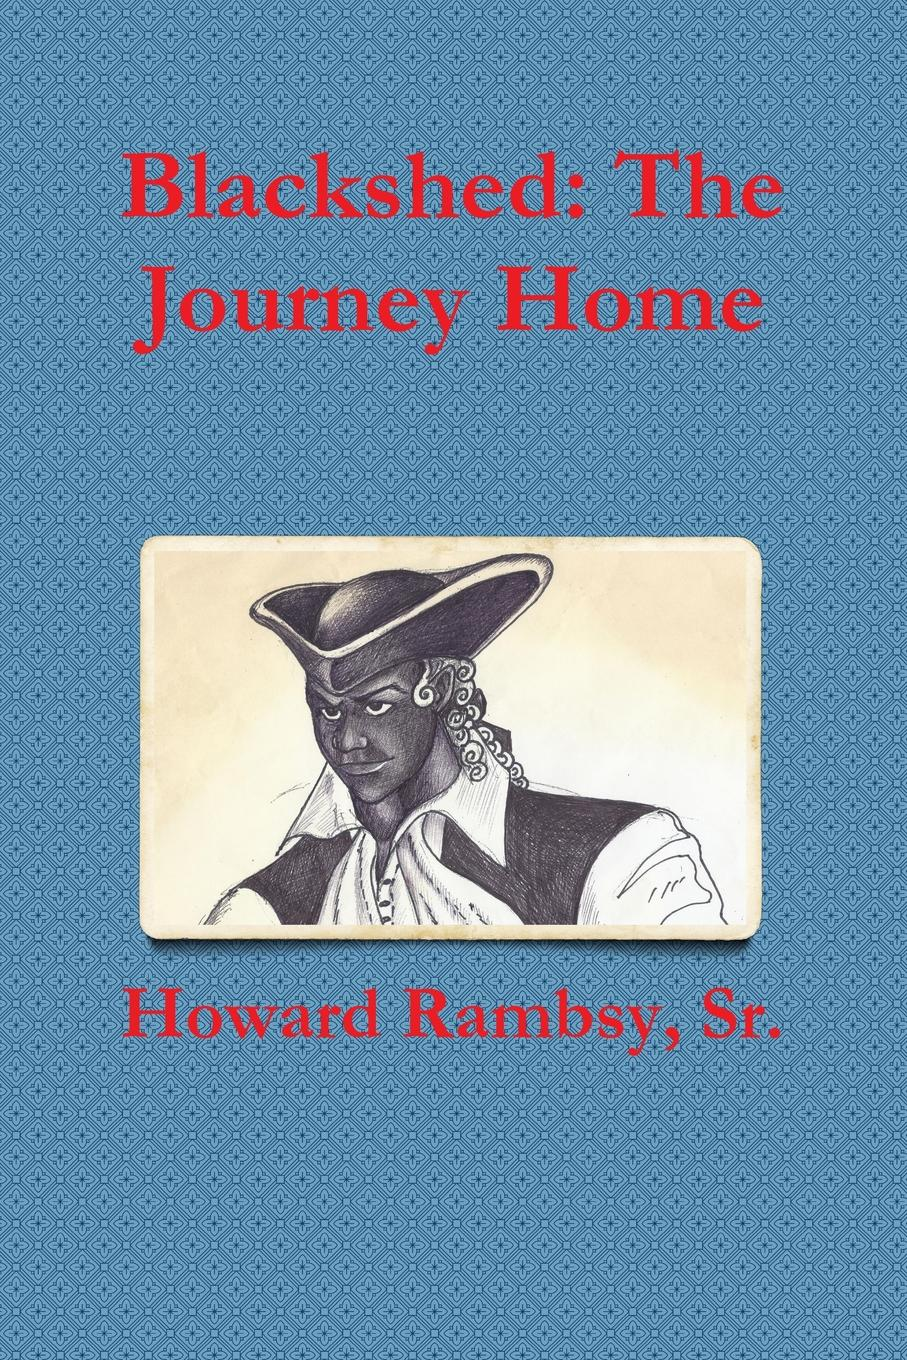 Sr. Howard Rambsy Blackshed. The Journey Home coldplay back to the start